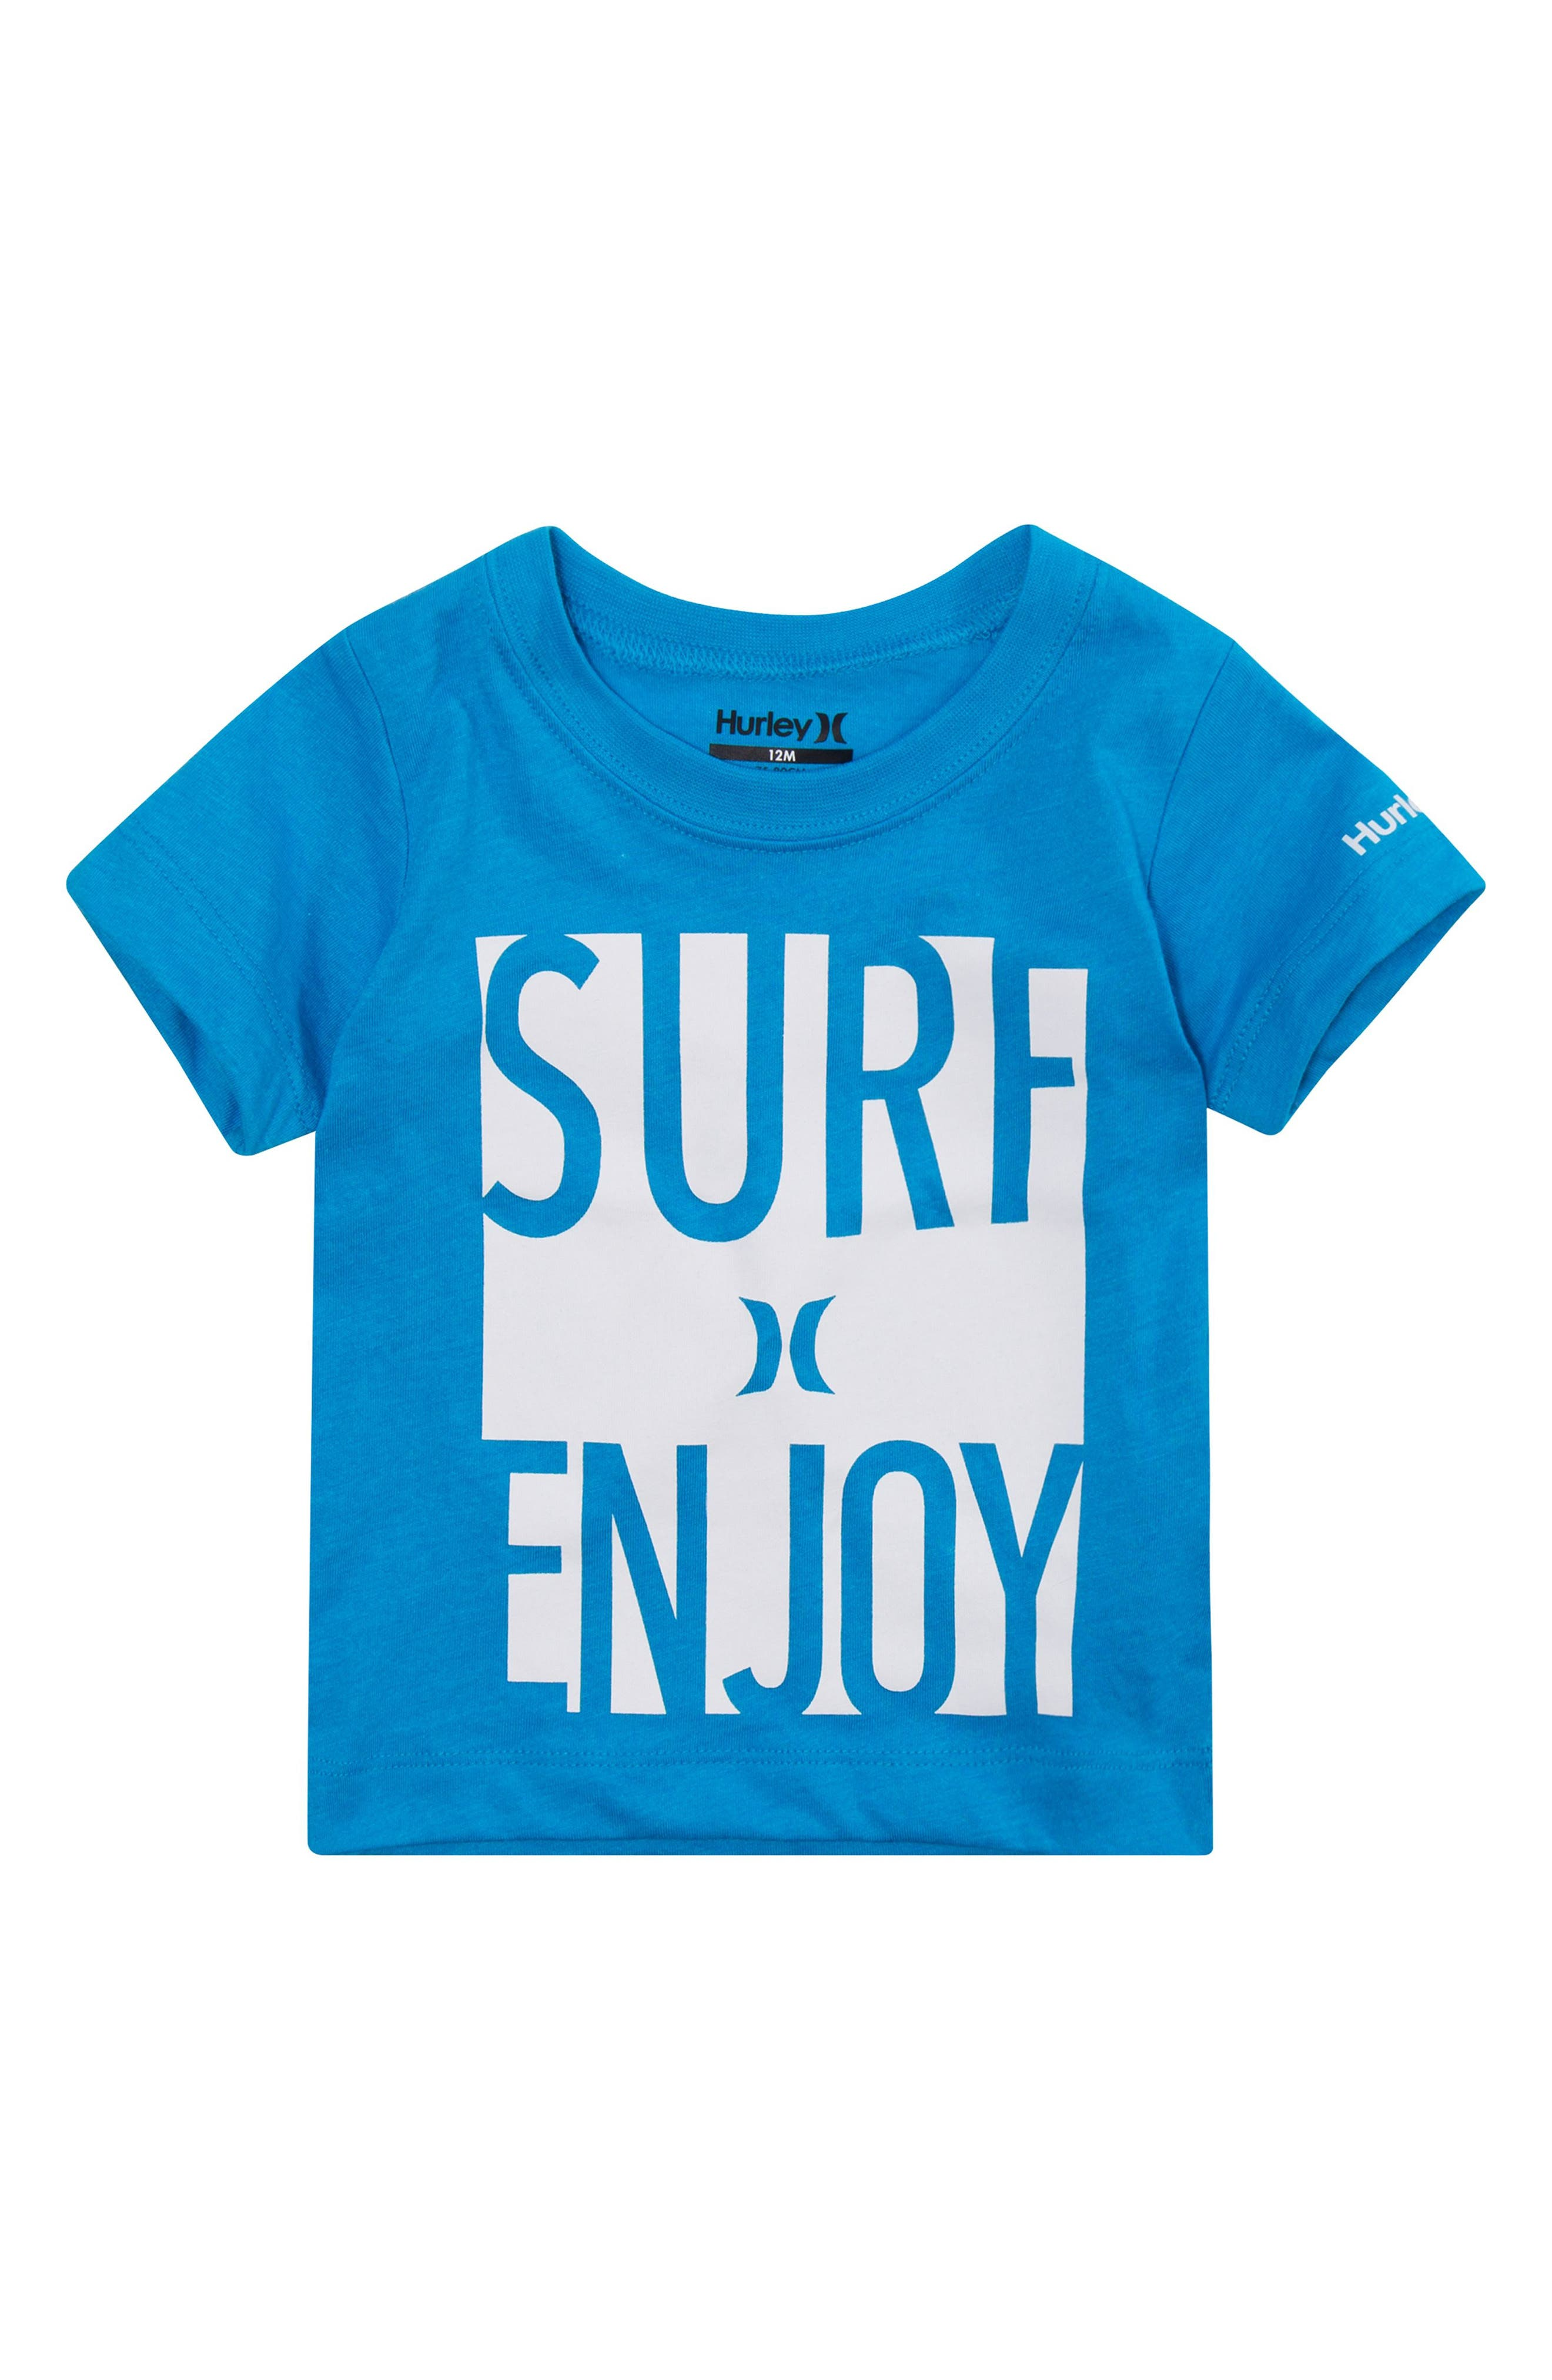 Surf & Enjoy Graphic T-Shirt,                         Main,                         color, Blue Lagoon Heather